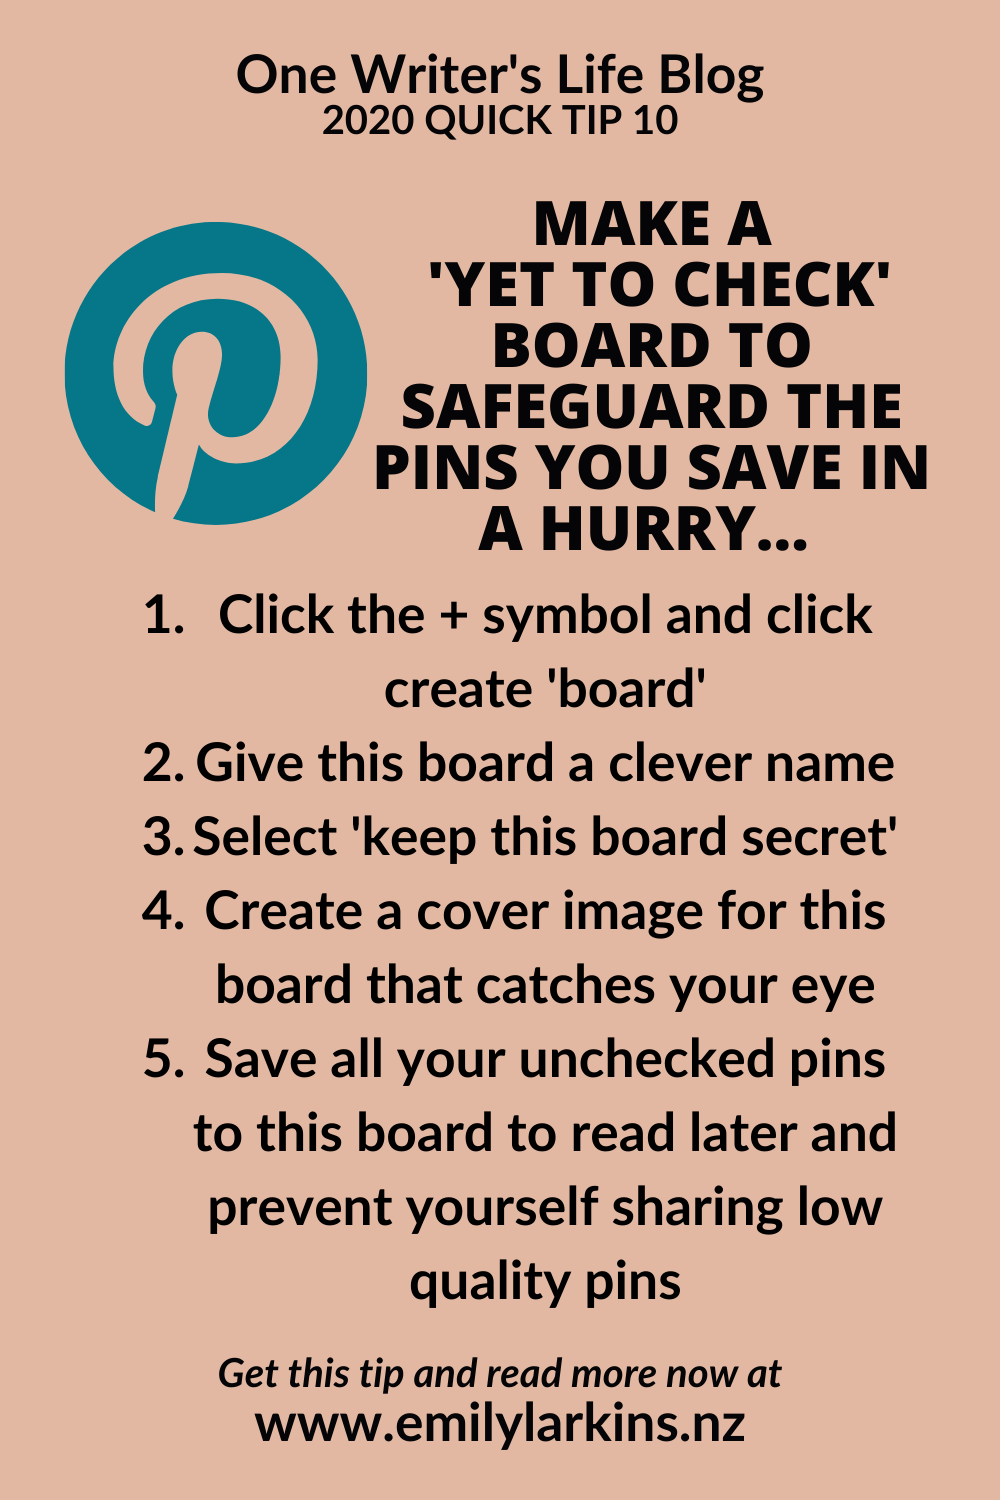 Picture quick instructions list for creating a Yet to Check board on Pinterest